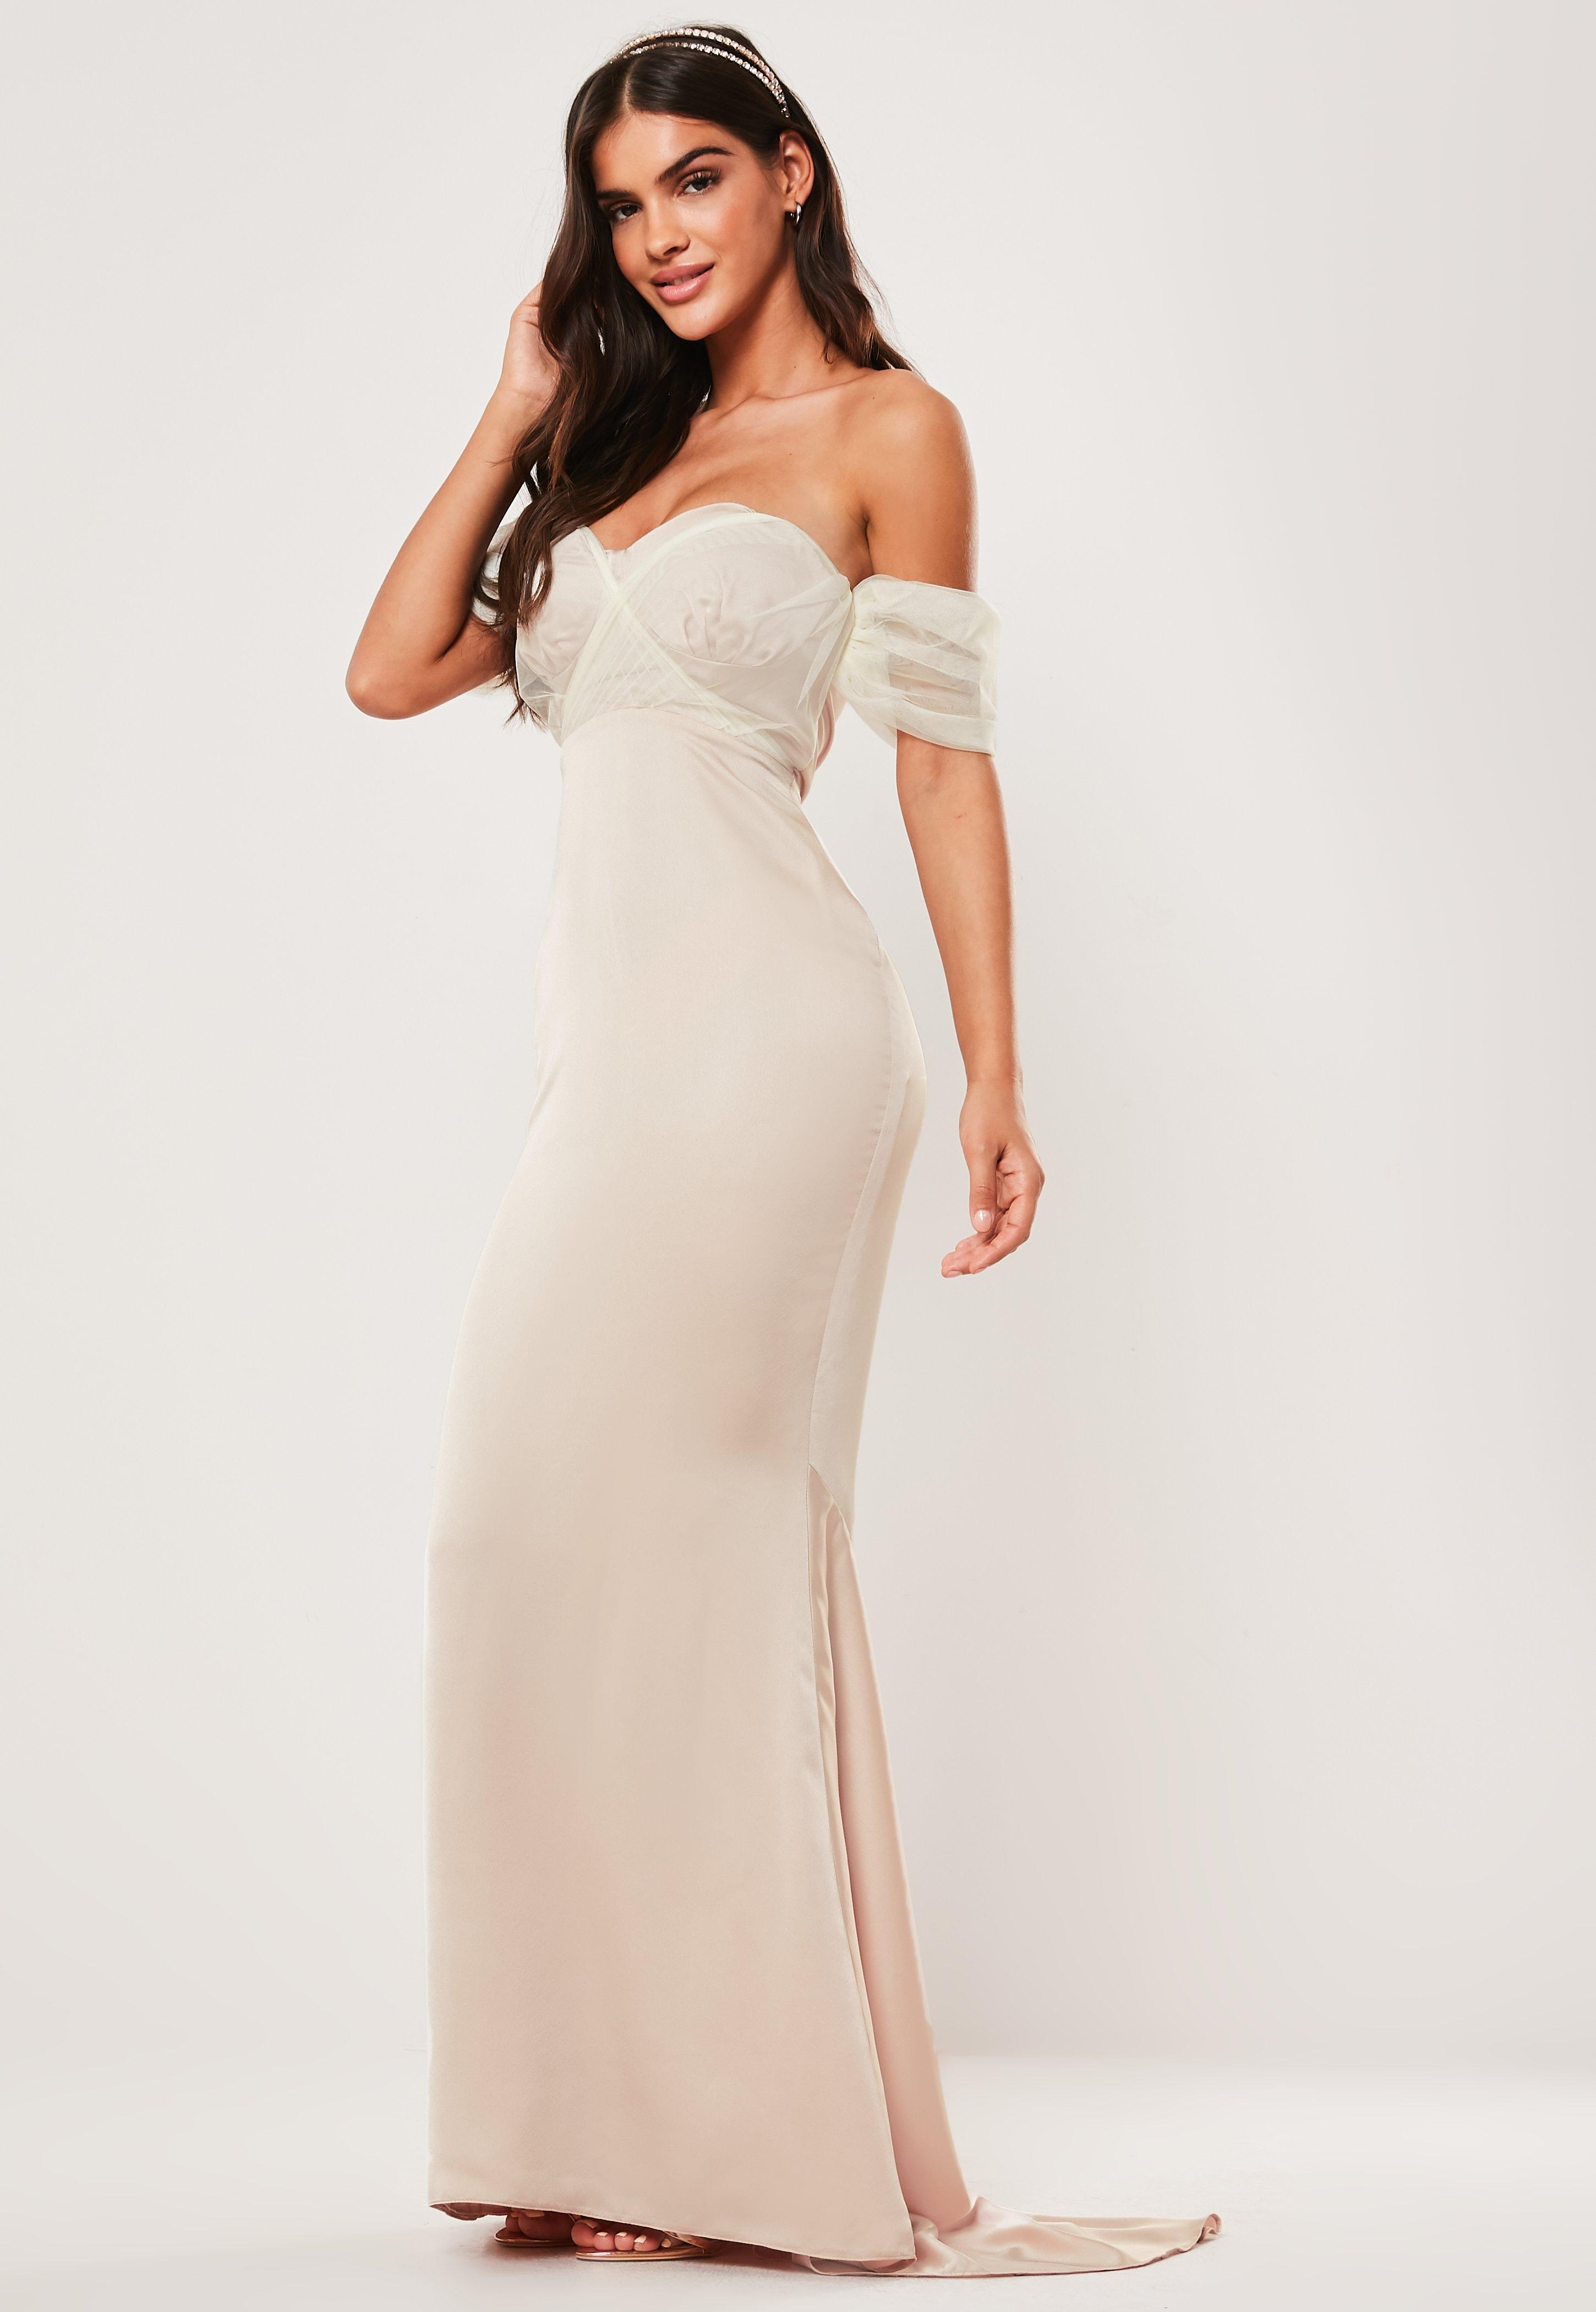 454d1c2b7e Maxi Dresses | Evening Maxi Dresses | Long Dresses | Missguided